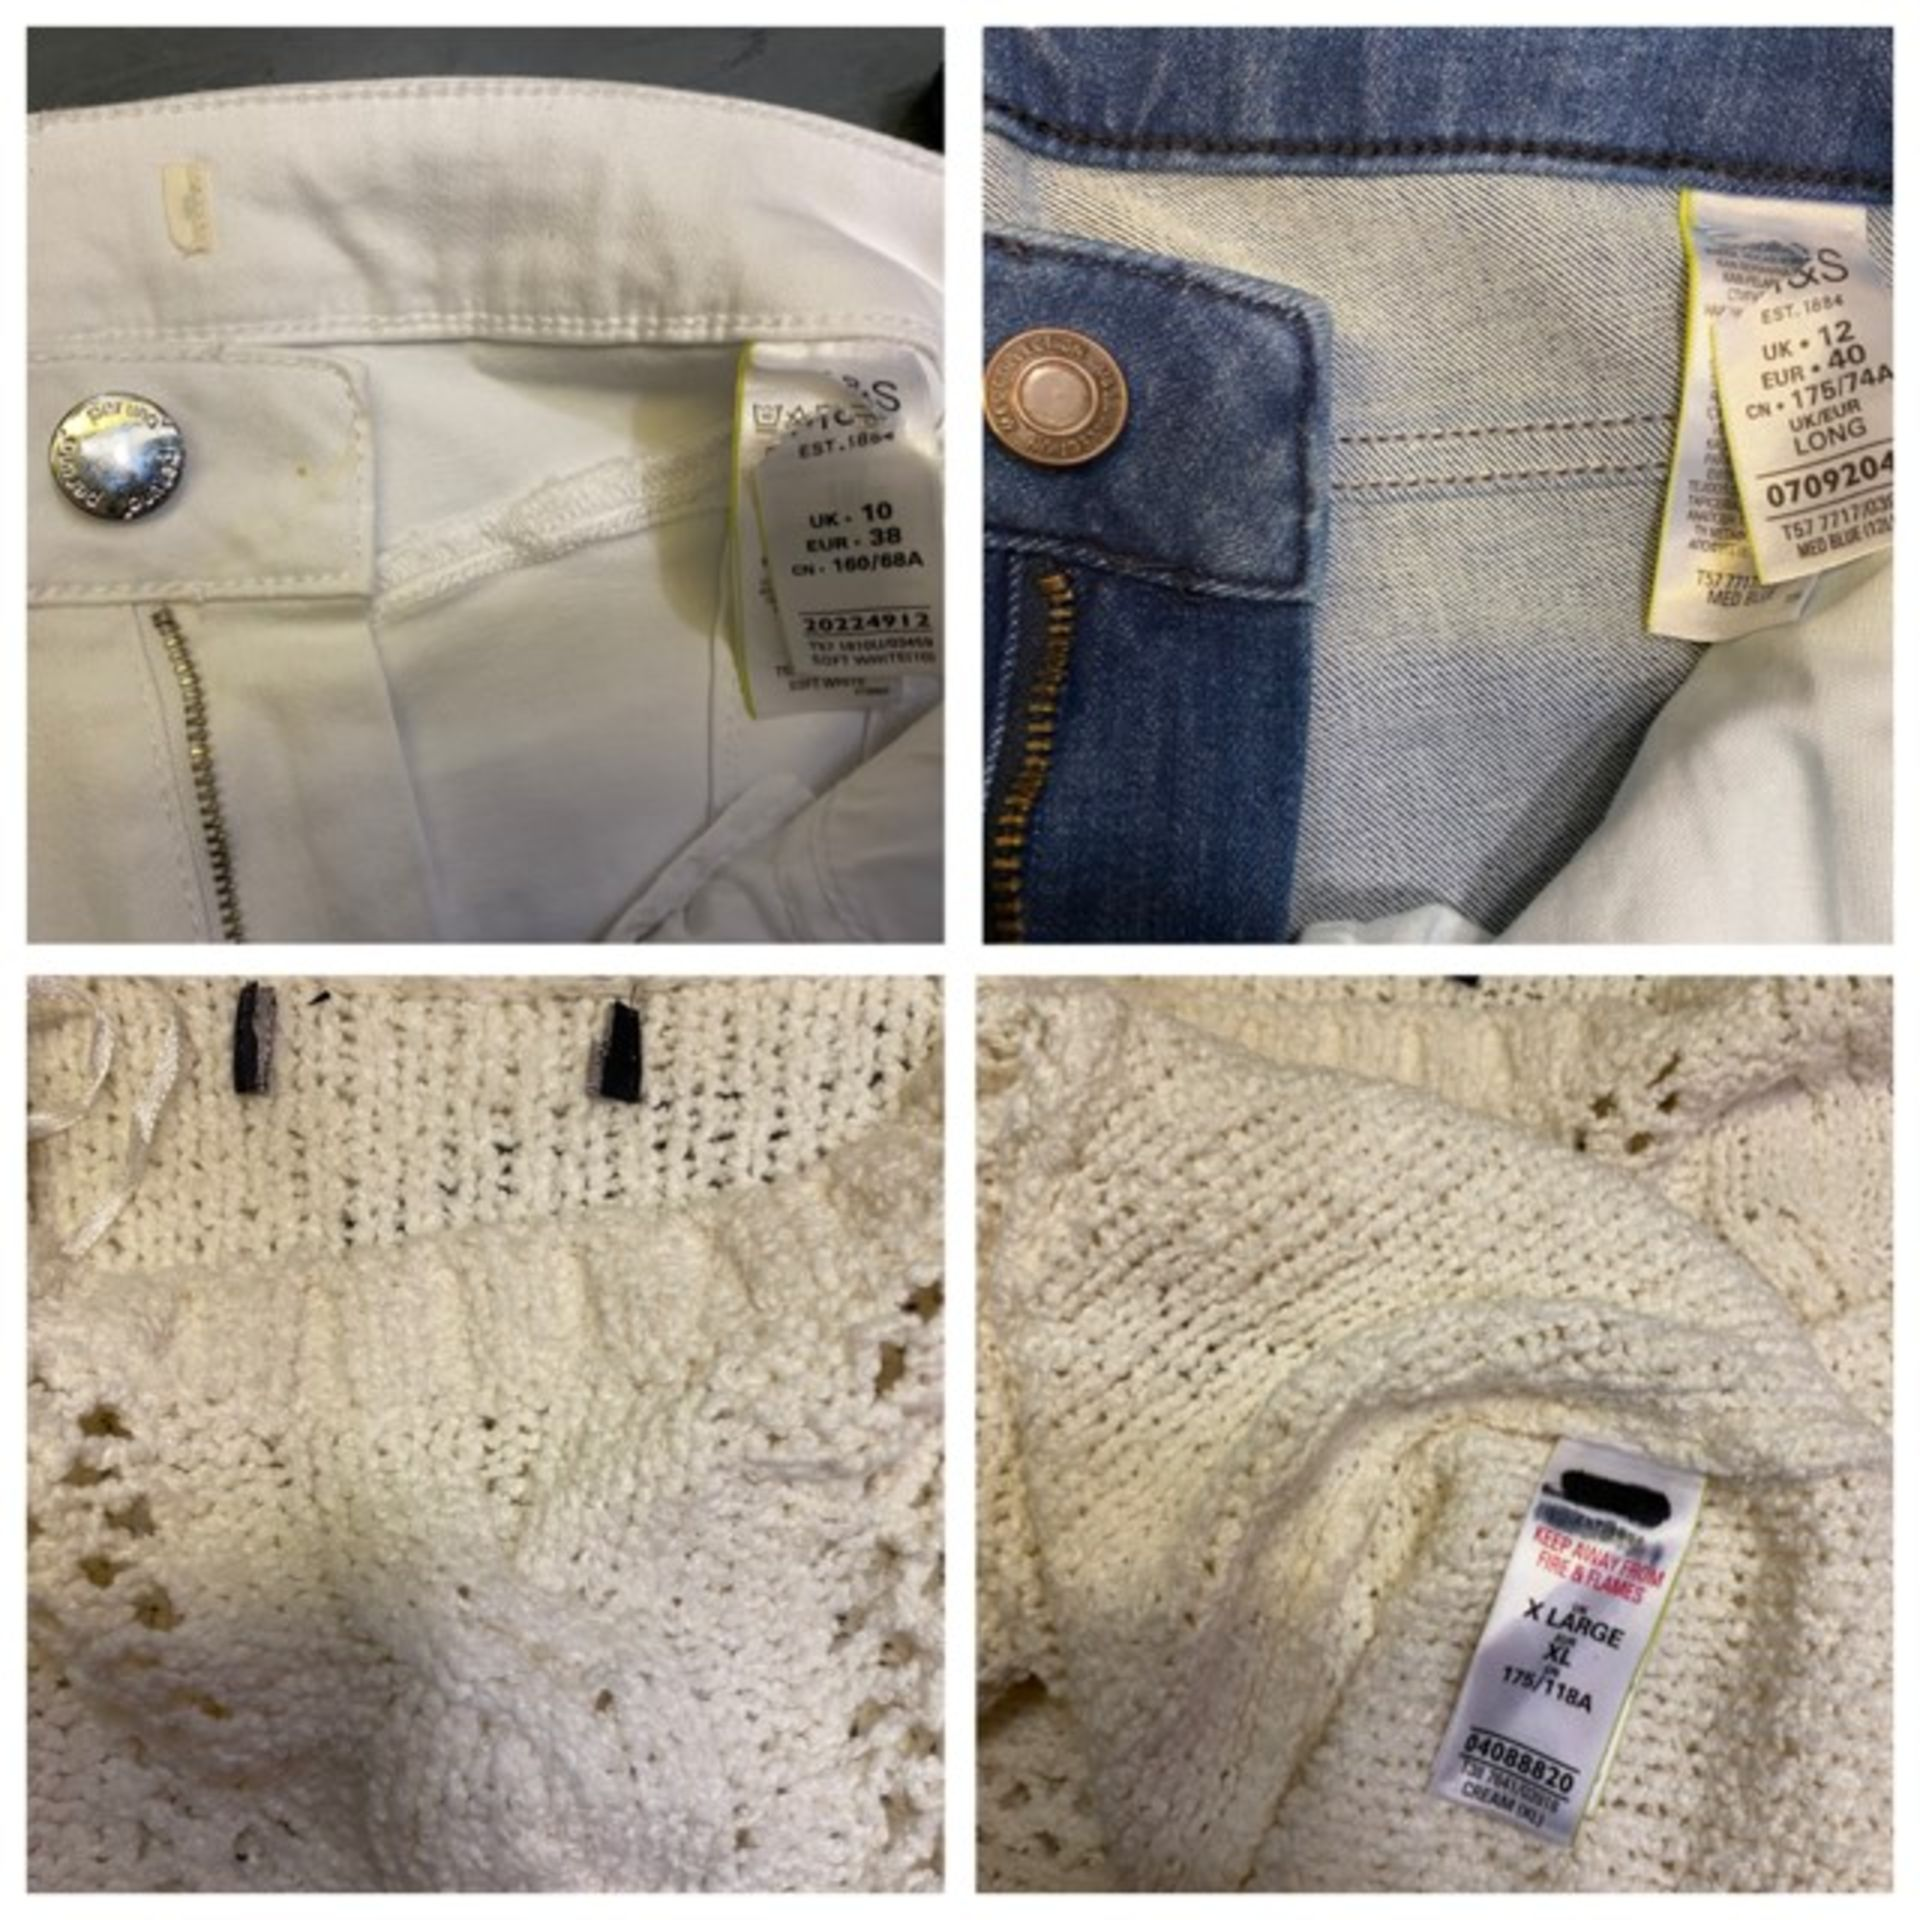 1 x mixed pallet = 280 items of Grade A M&S Womenswear Clothing. Total RRP £7924.50 - Image 7 of 7